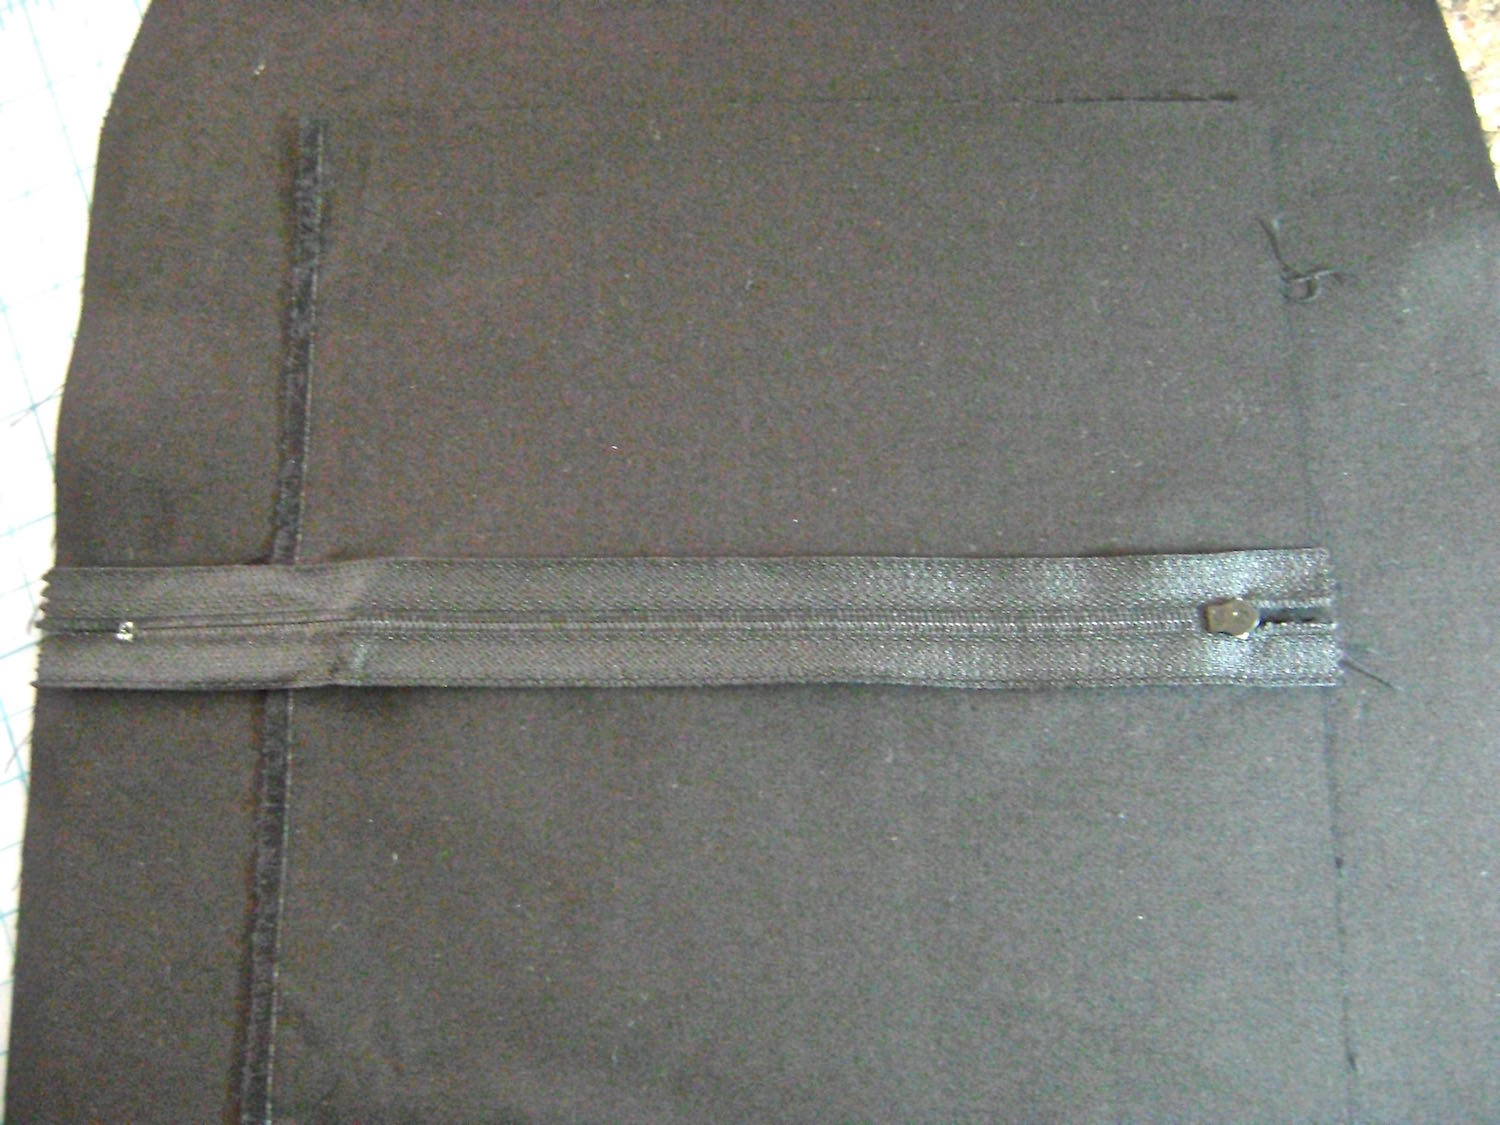 step 6 - Turn over and center zipper right side down.